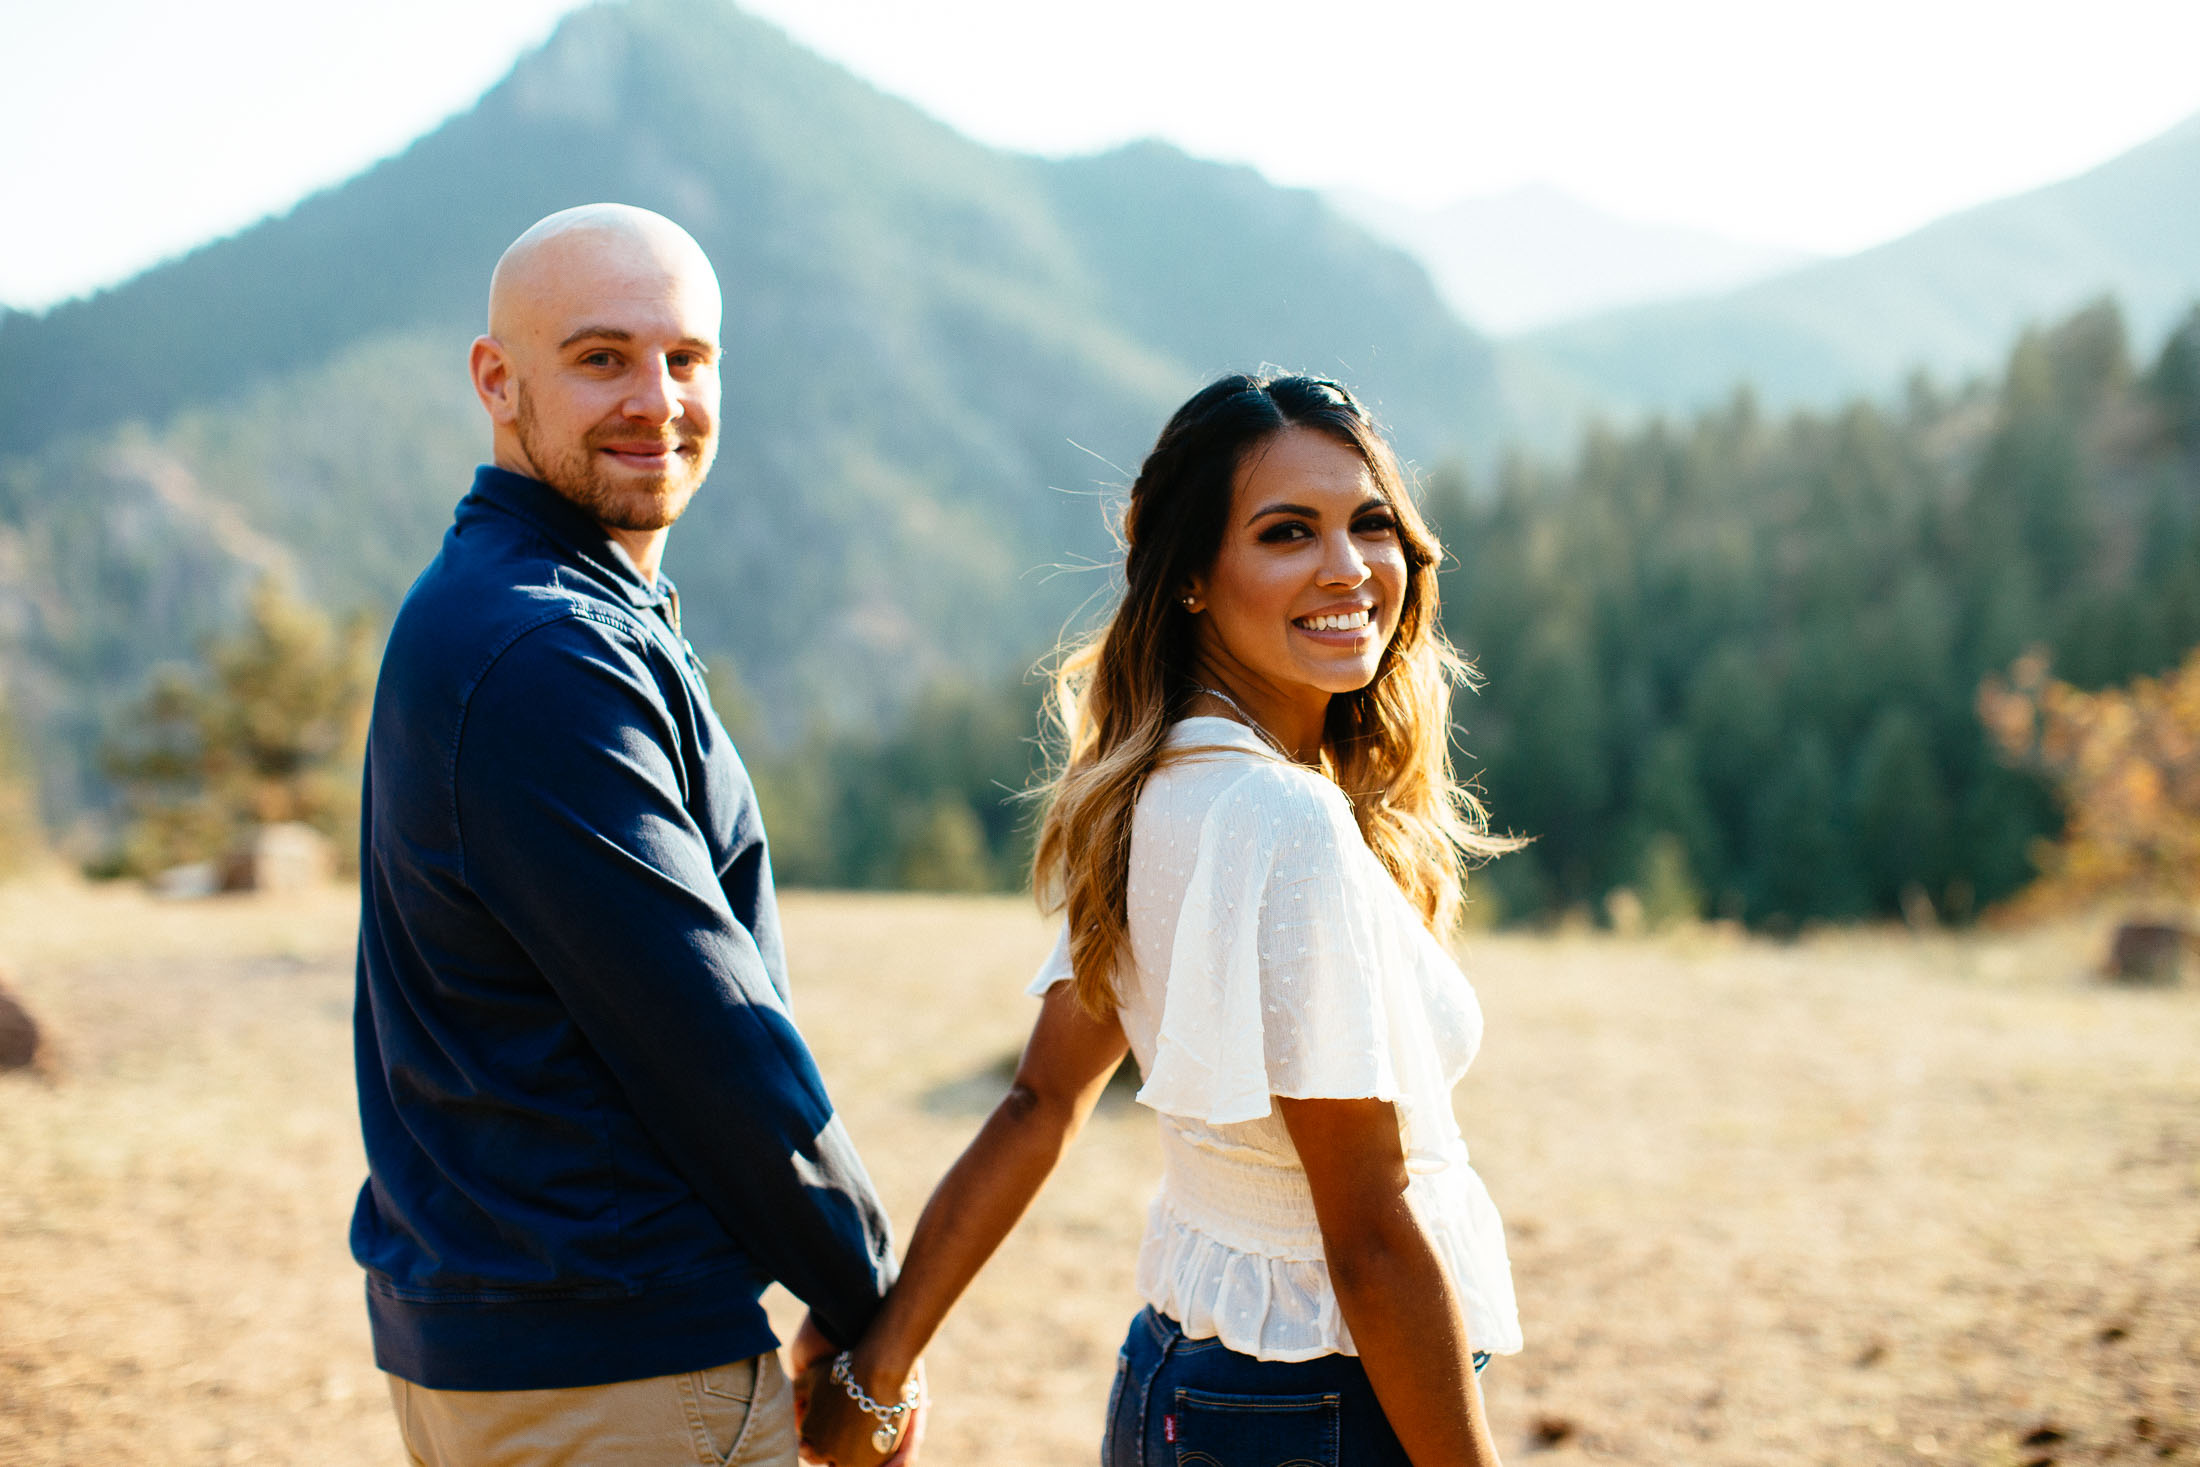 Couple looks back at the camera as they hold hands.